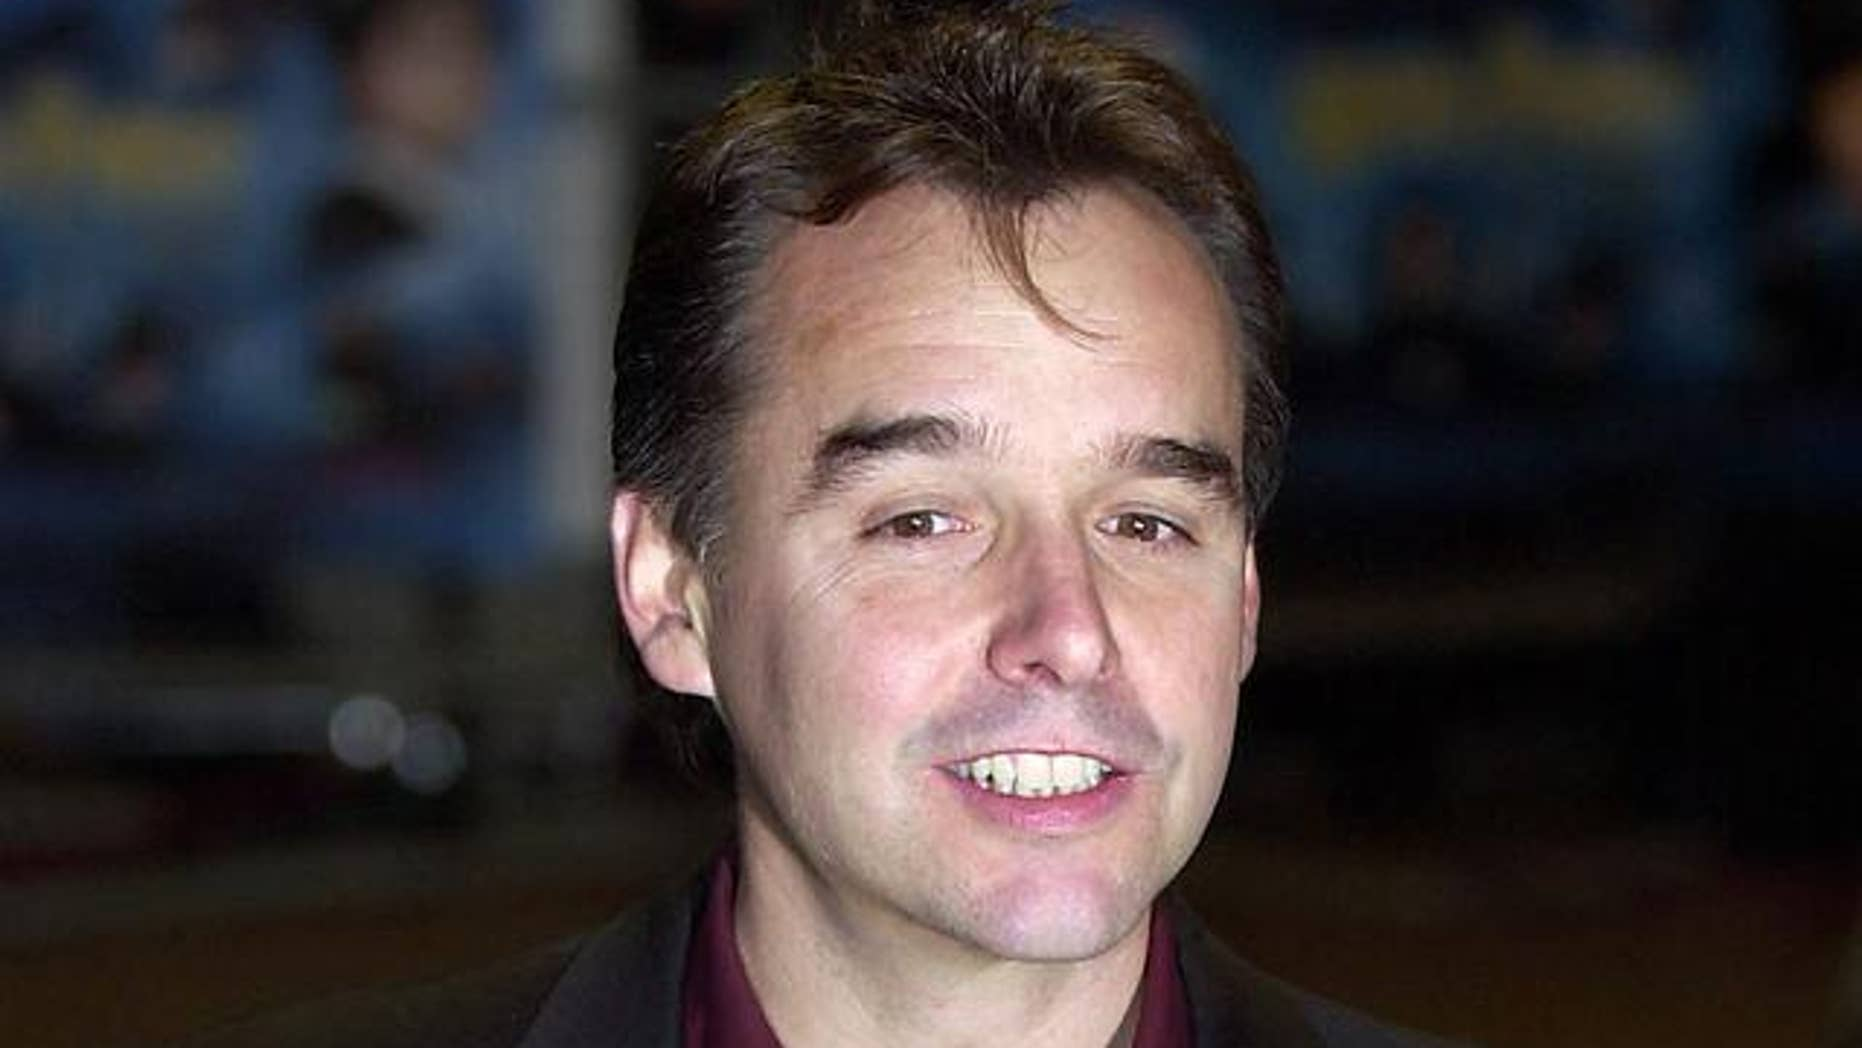 Director Chris Columbus will be working on a film project about young Jesus Christ. (AP)